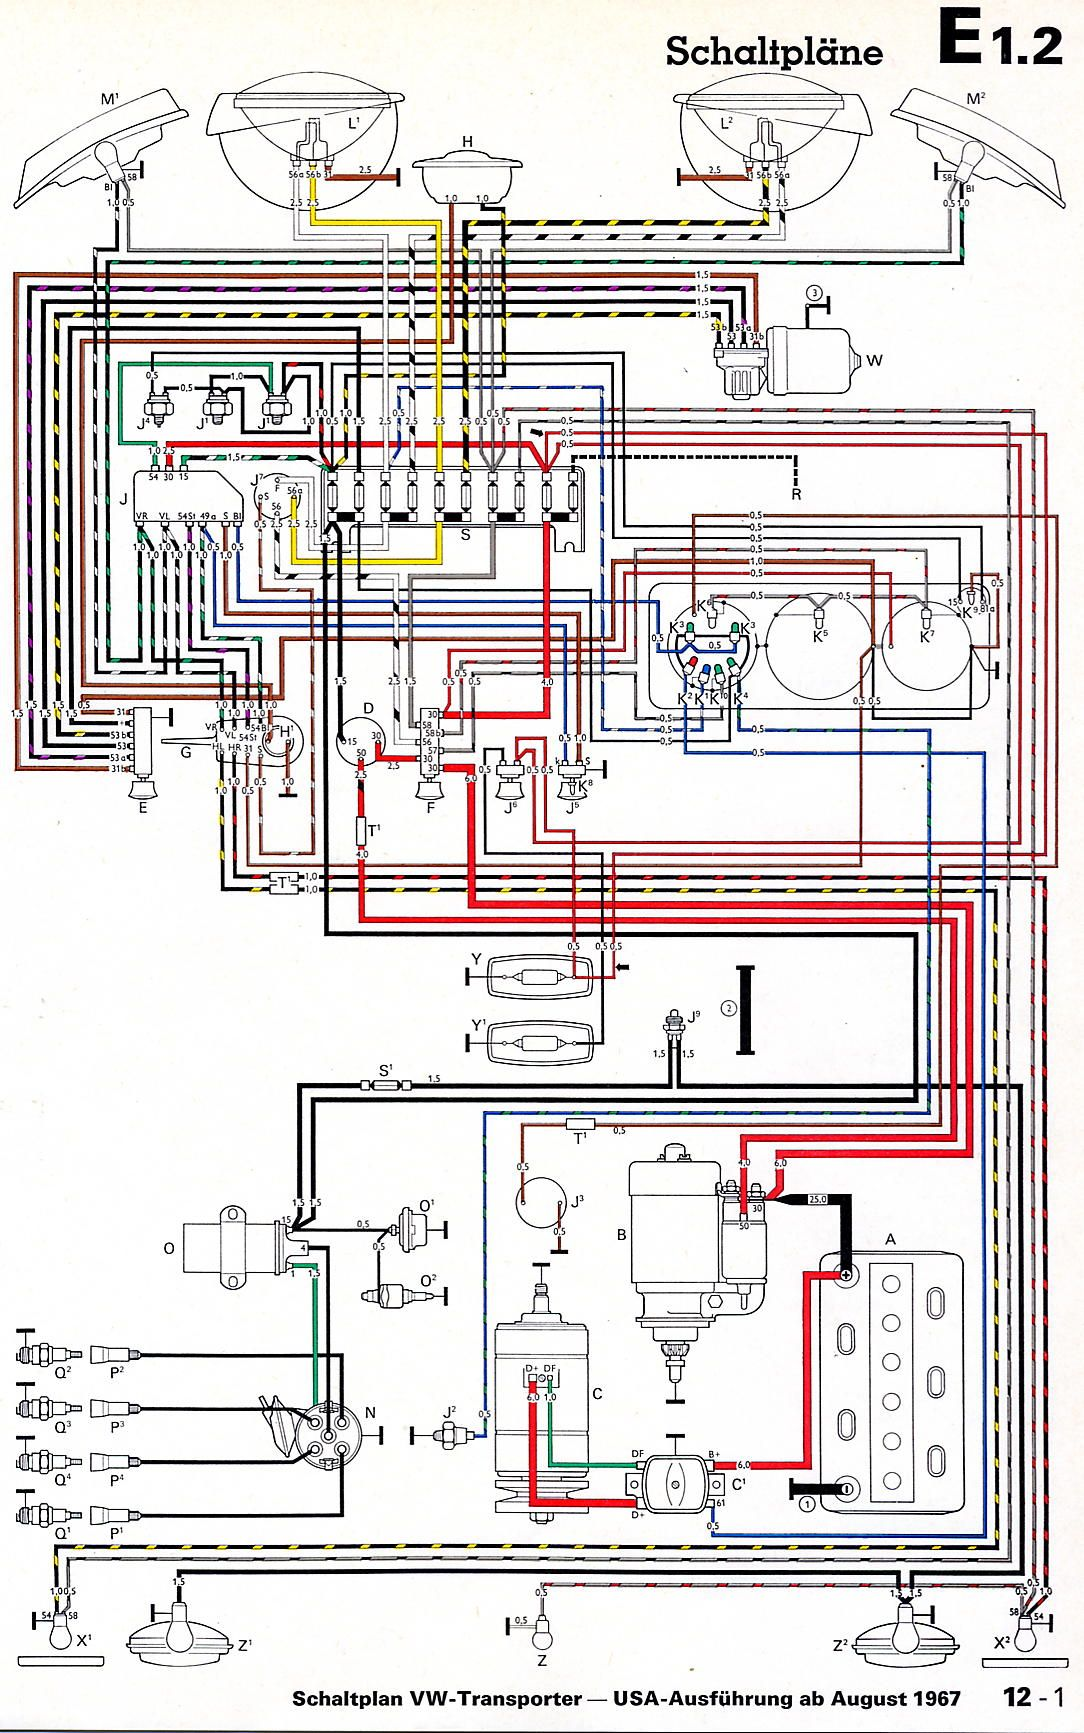 Wiring Diagram 1968 Vw Van - Wire Data Schema • on engine schematics, plumbing schematics, transmission schematics, transformer schematics, amplifier schematics, wire schematics, ford diagrams schematics, circuit schematics, electronics schematics, ignition schematics, generator schematics, piping schematics, ecu schematics, ductwork schematics, motor schematics, computer schematics, electrical schematics, tube amp schematics, engineering schematics, design schematics,